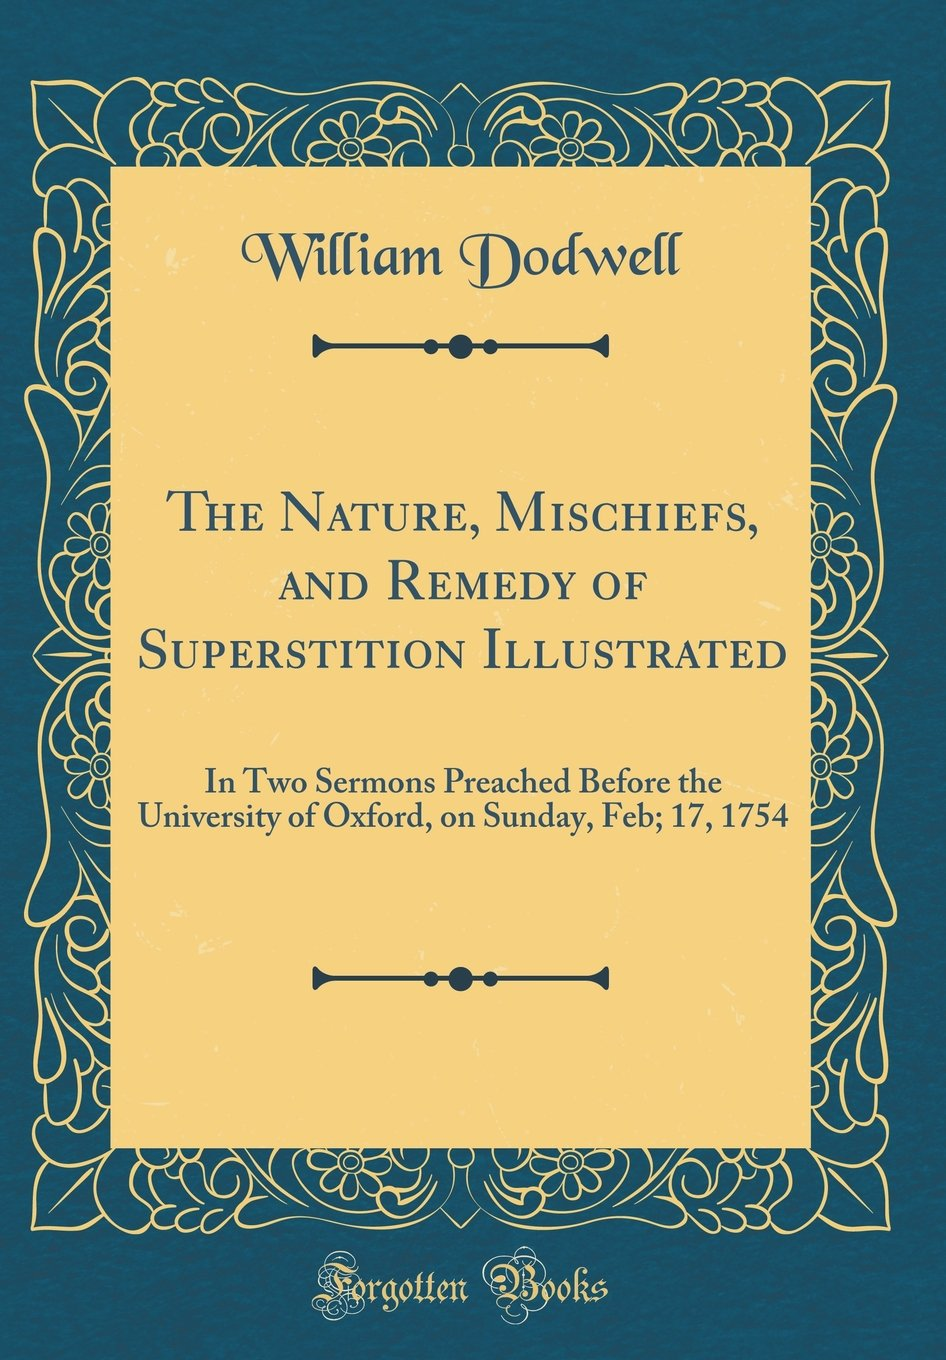 The Nature, Mischiefs, and Remedy of Superstition Illustrated: In Two Sermons Preached Before the University of Oxford, on Sunday, Feb; 17, 1754 (Classic Reprint) ebook